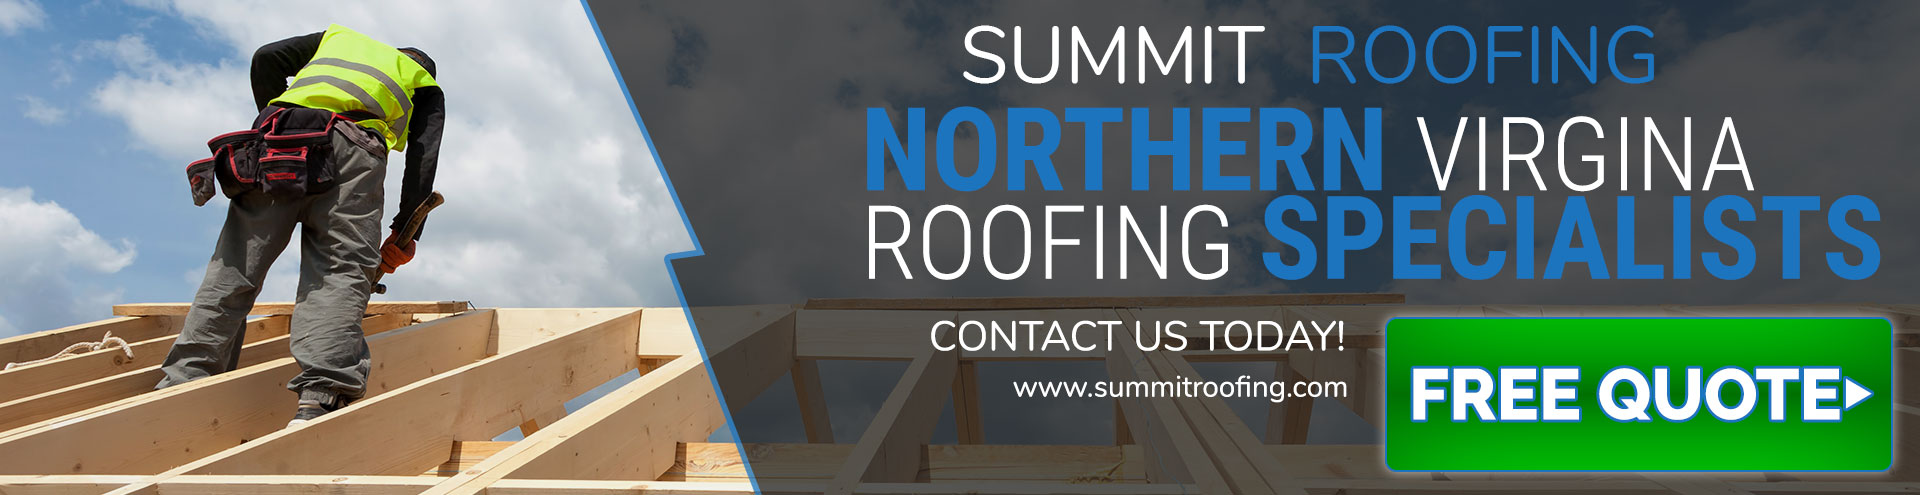 Request Free Roofing Estimate